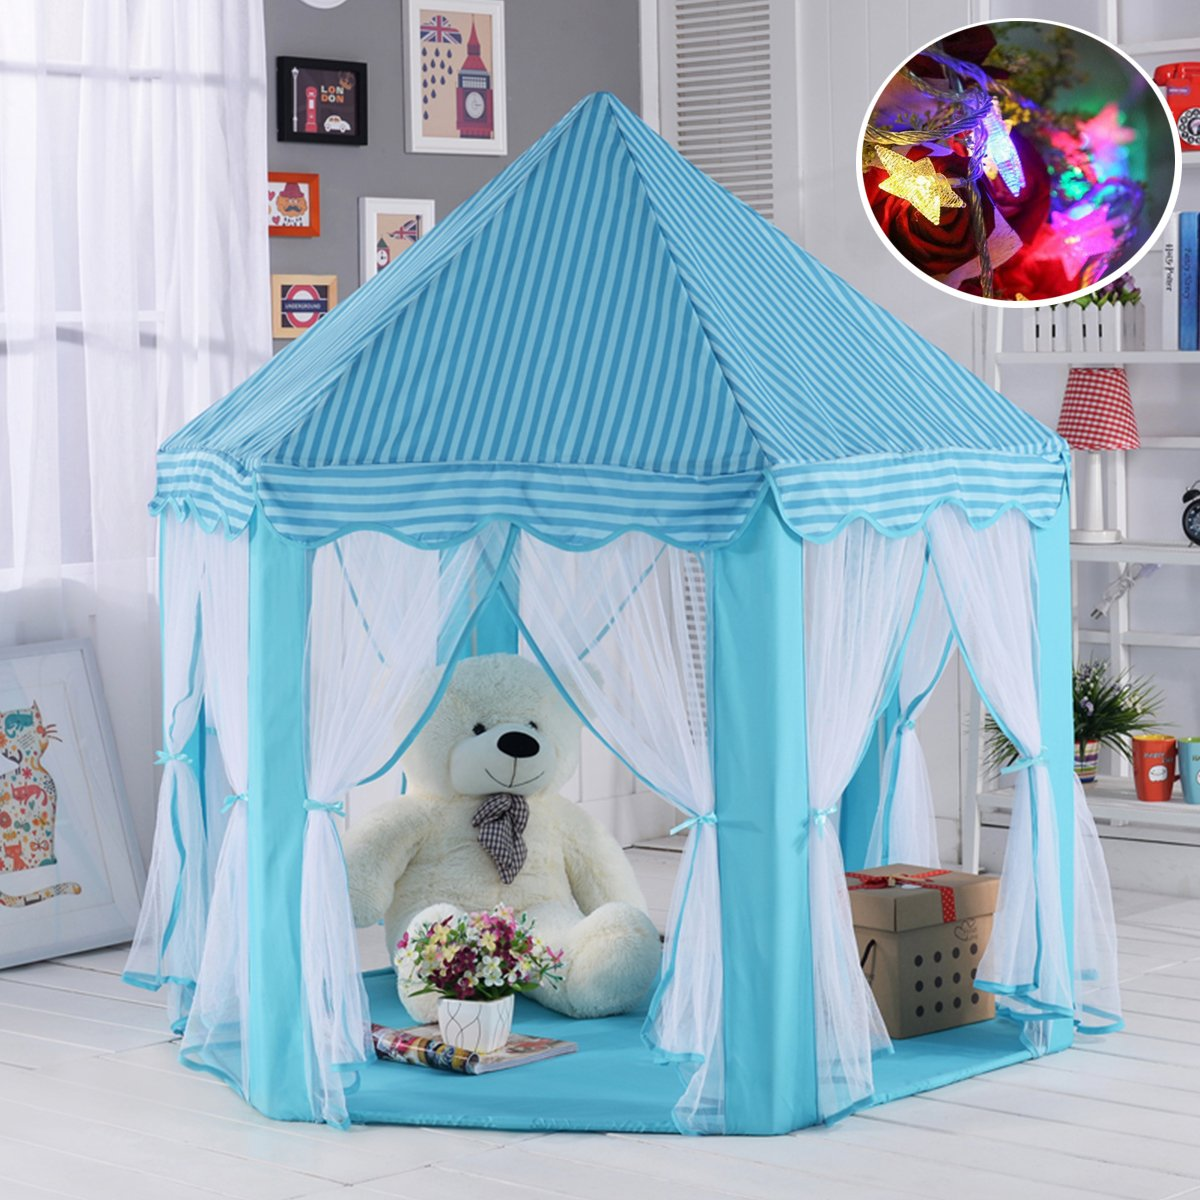 Aubeco Blue Hexagon Play Castle Indoor Kids Play Tent Outdoor Boys & Girls Playhouse with 23ft LED Star String Lights, Birthday for Kids, 55''(Diameter)×53''( Height)